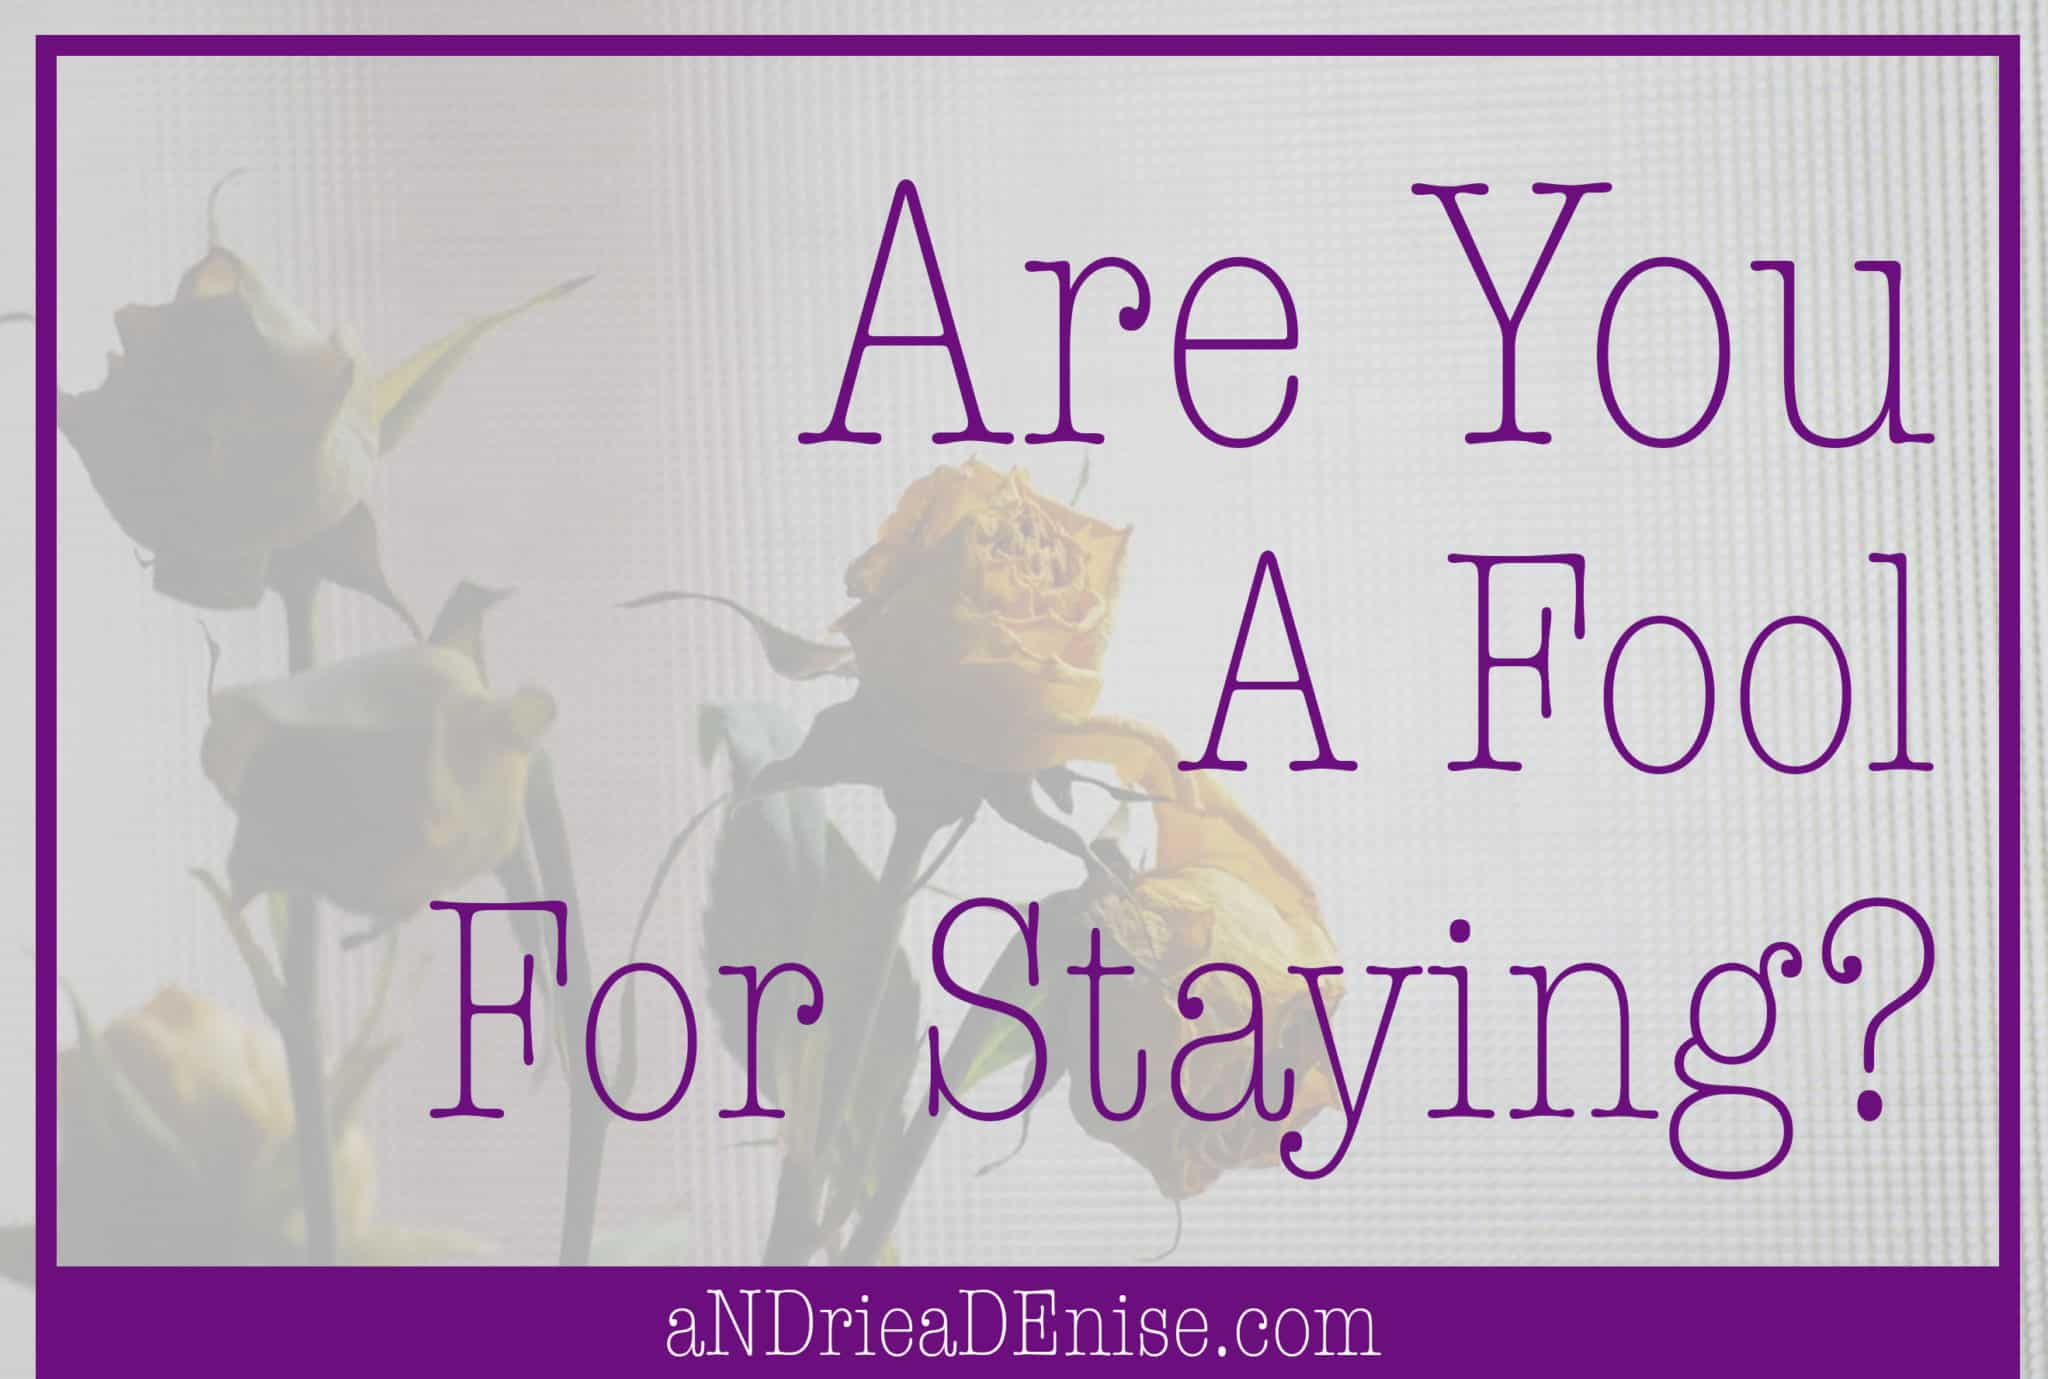 Are you fool for staying in your marriage?